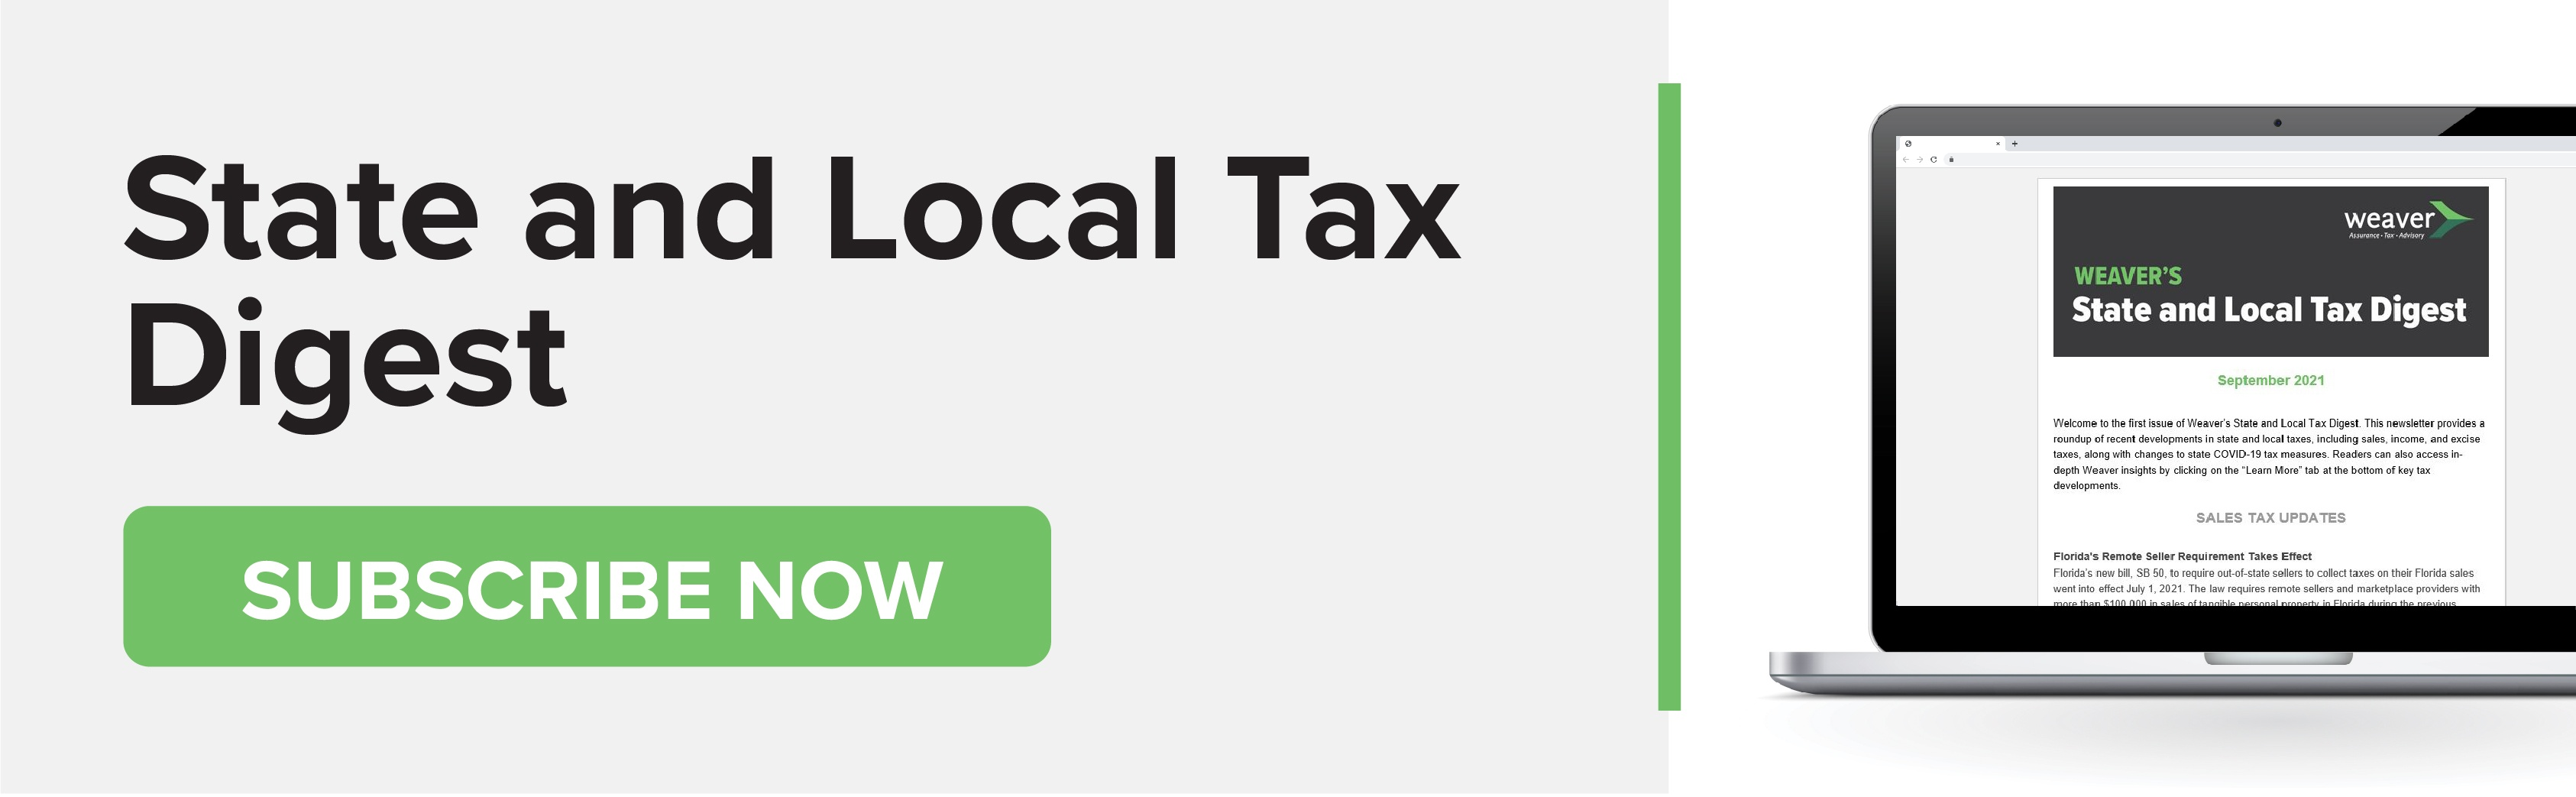 Subscribe to Weaver's State and Local Tax Digest